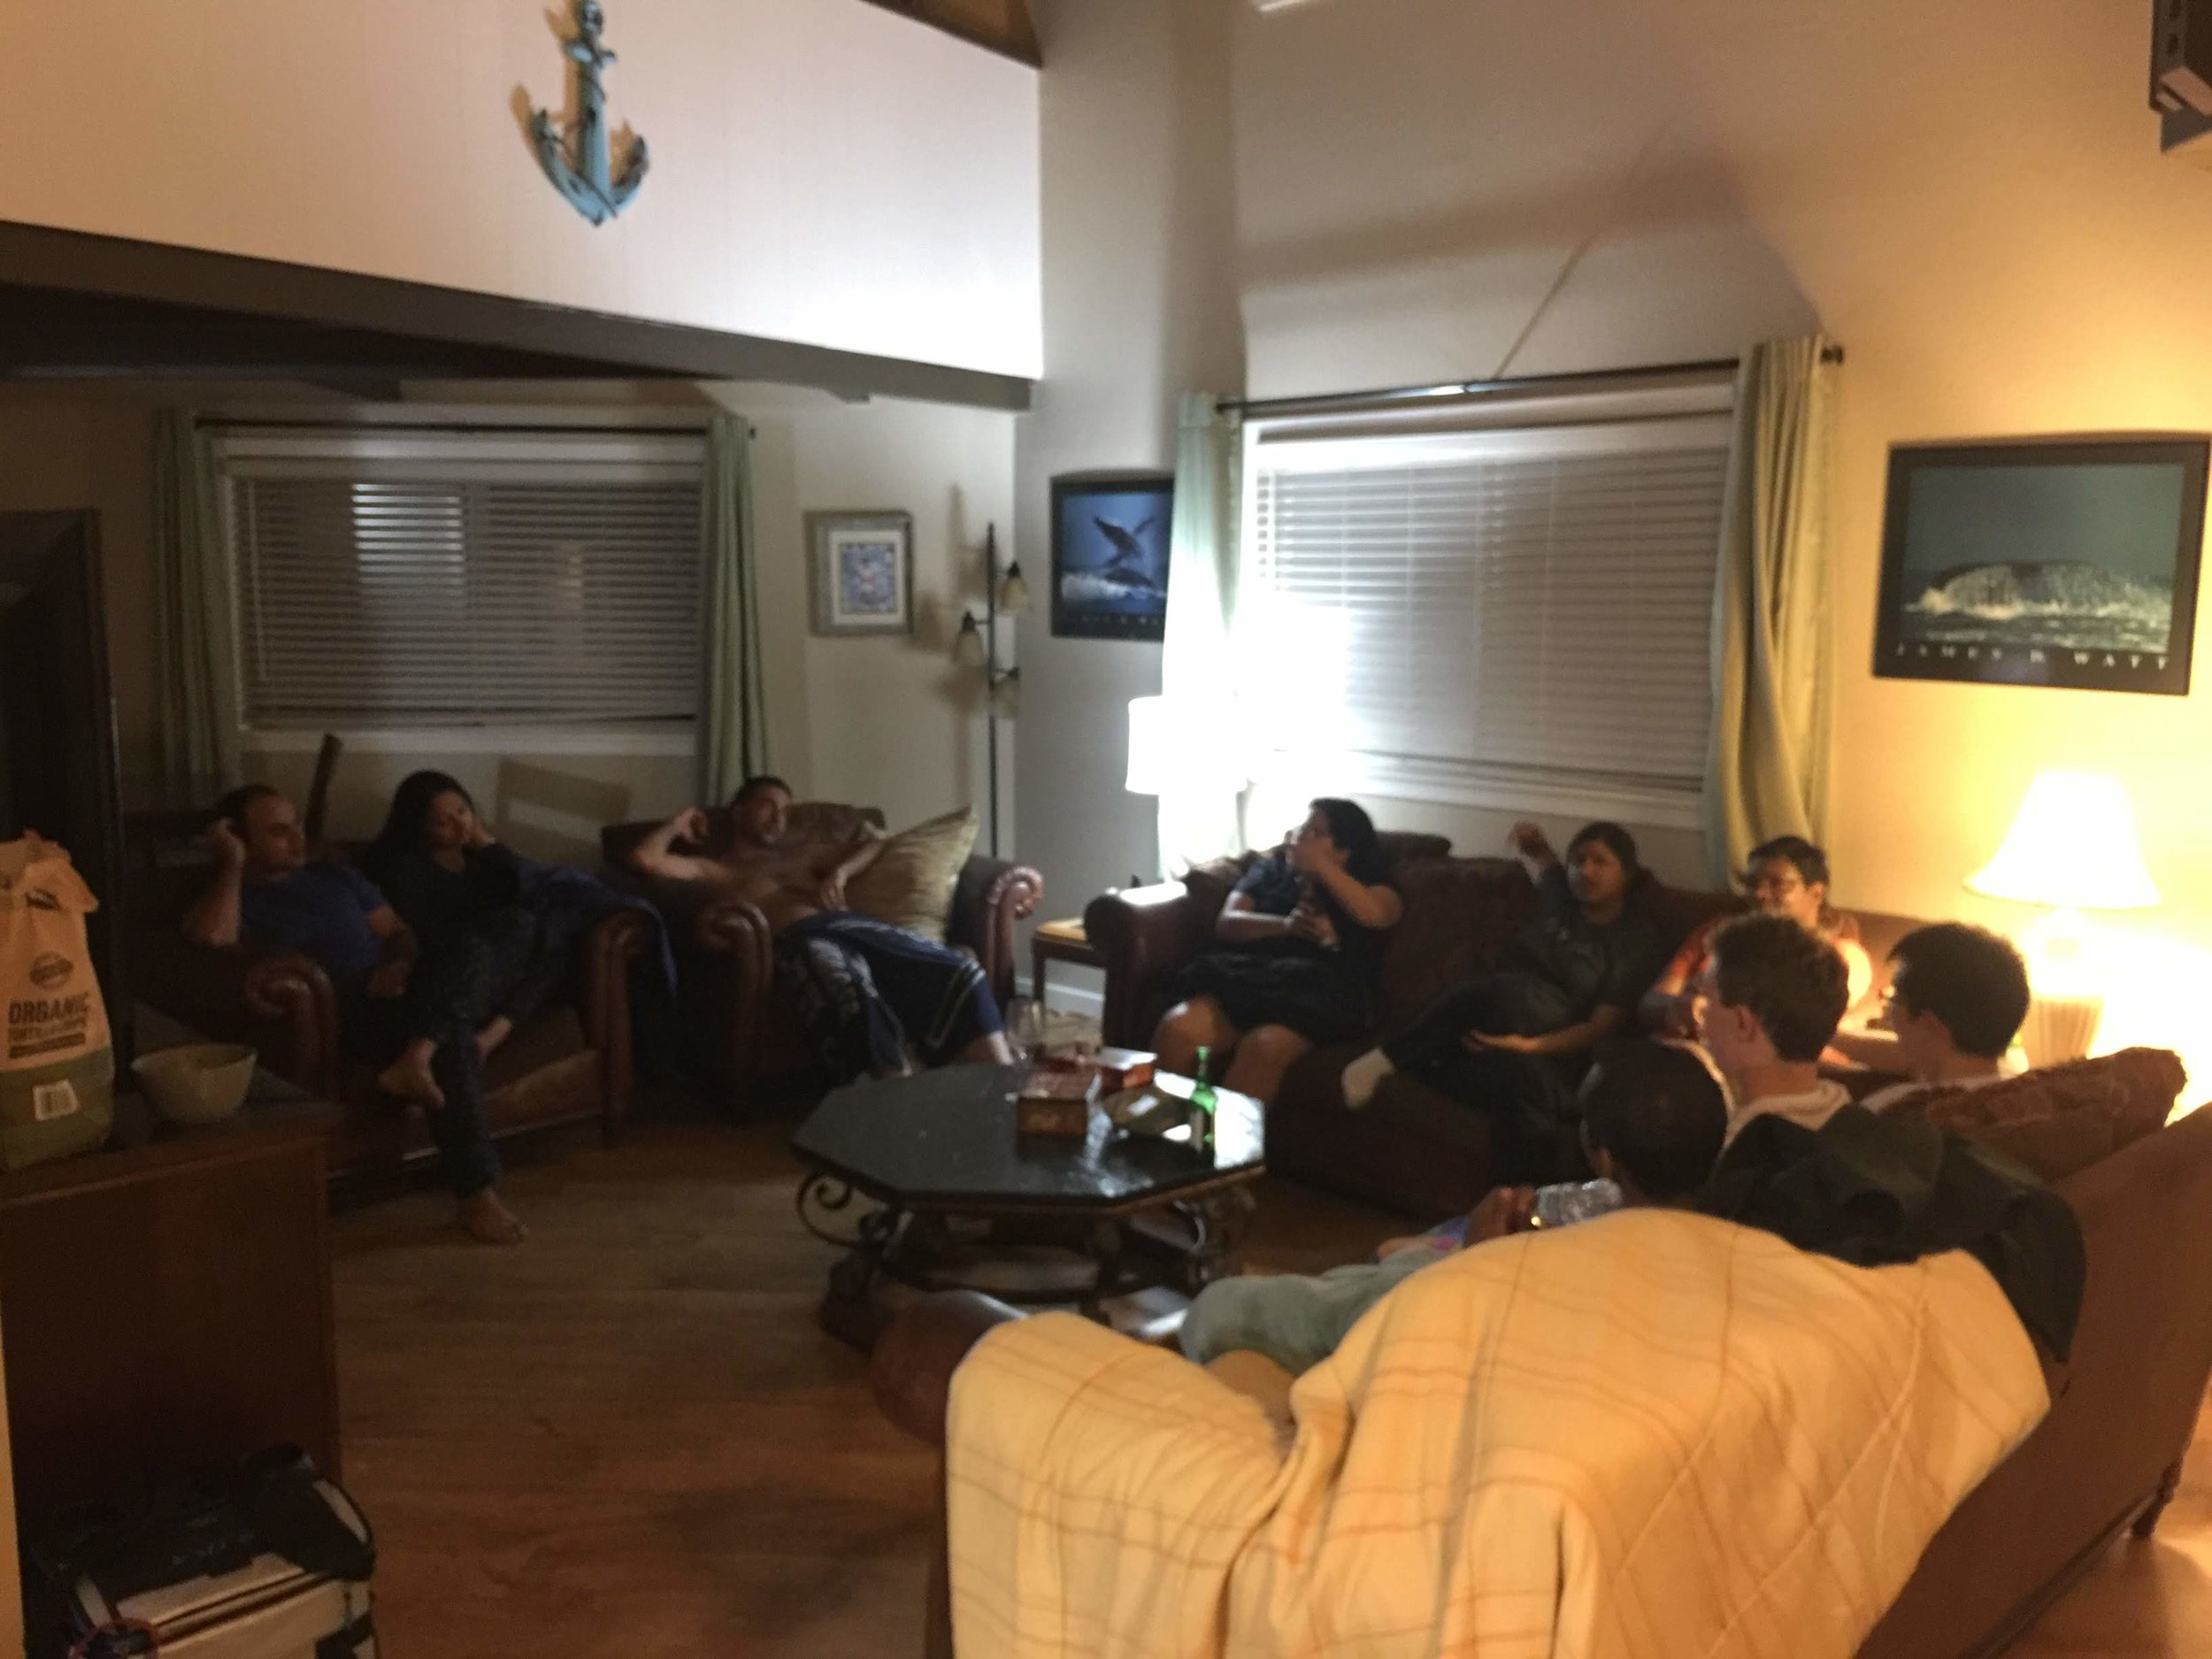 Retreat 2018 - Our lab retreat in Santa Cruz and Pajaro Dunes!(Most of the photos taken by Siyeon Rhee)